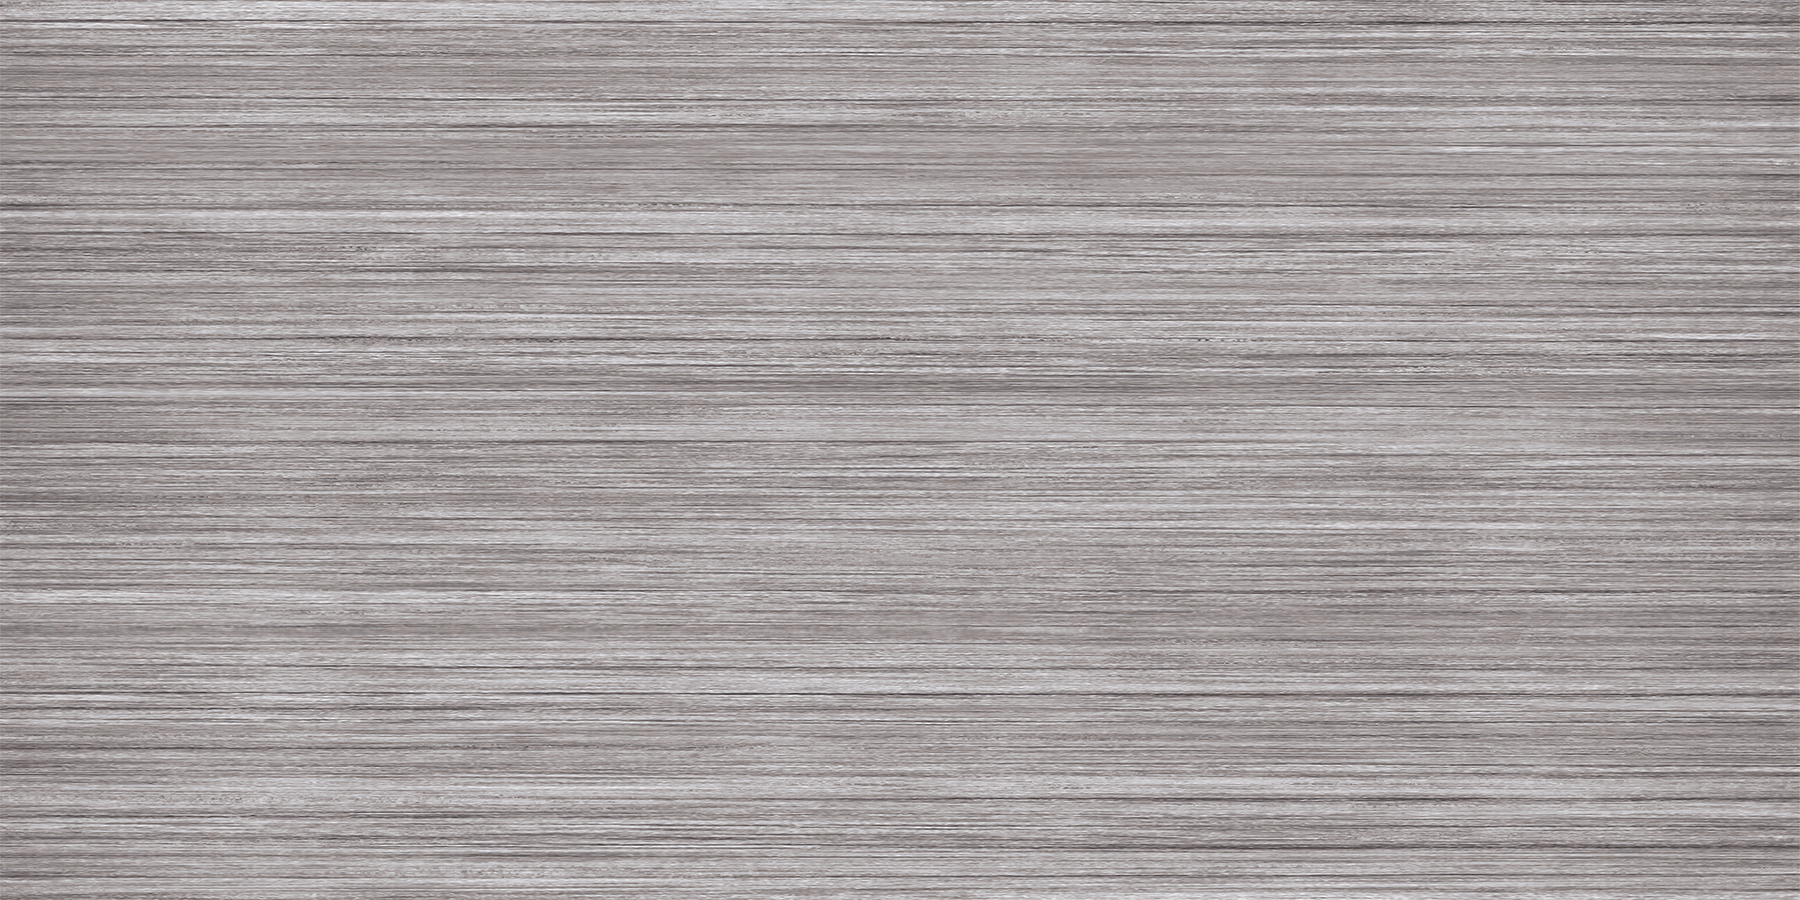 12x24 Springwood Grey Porcelain Tile